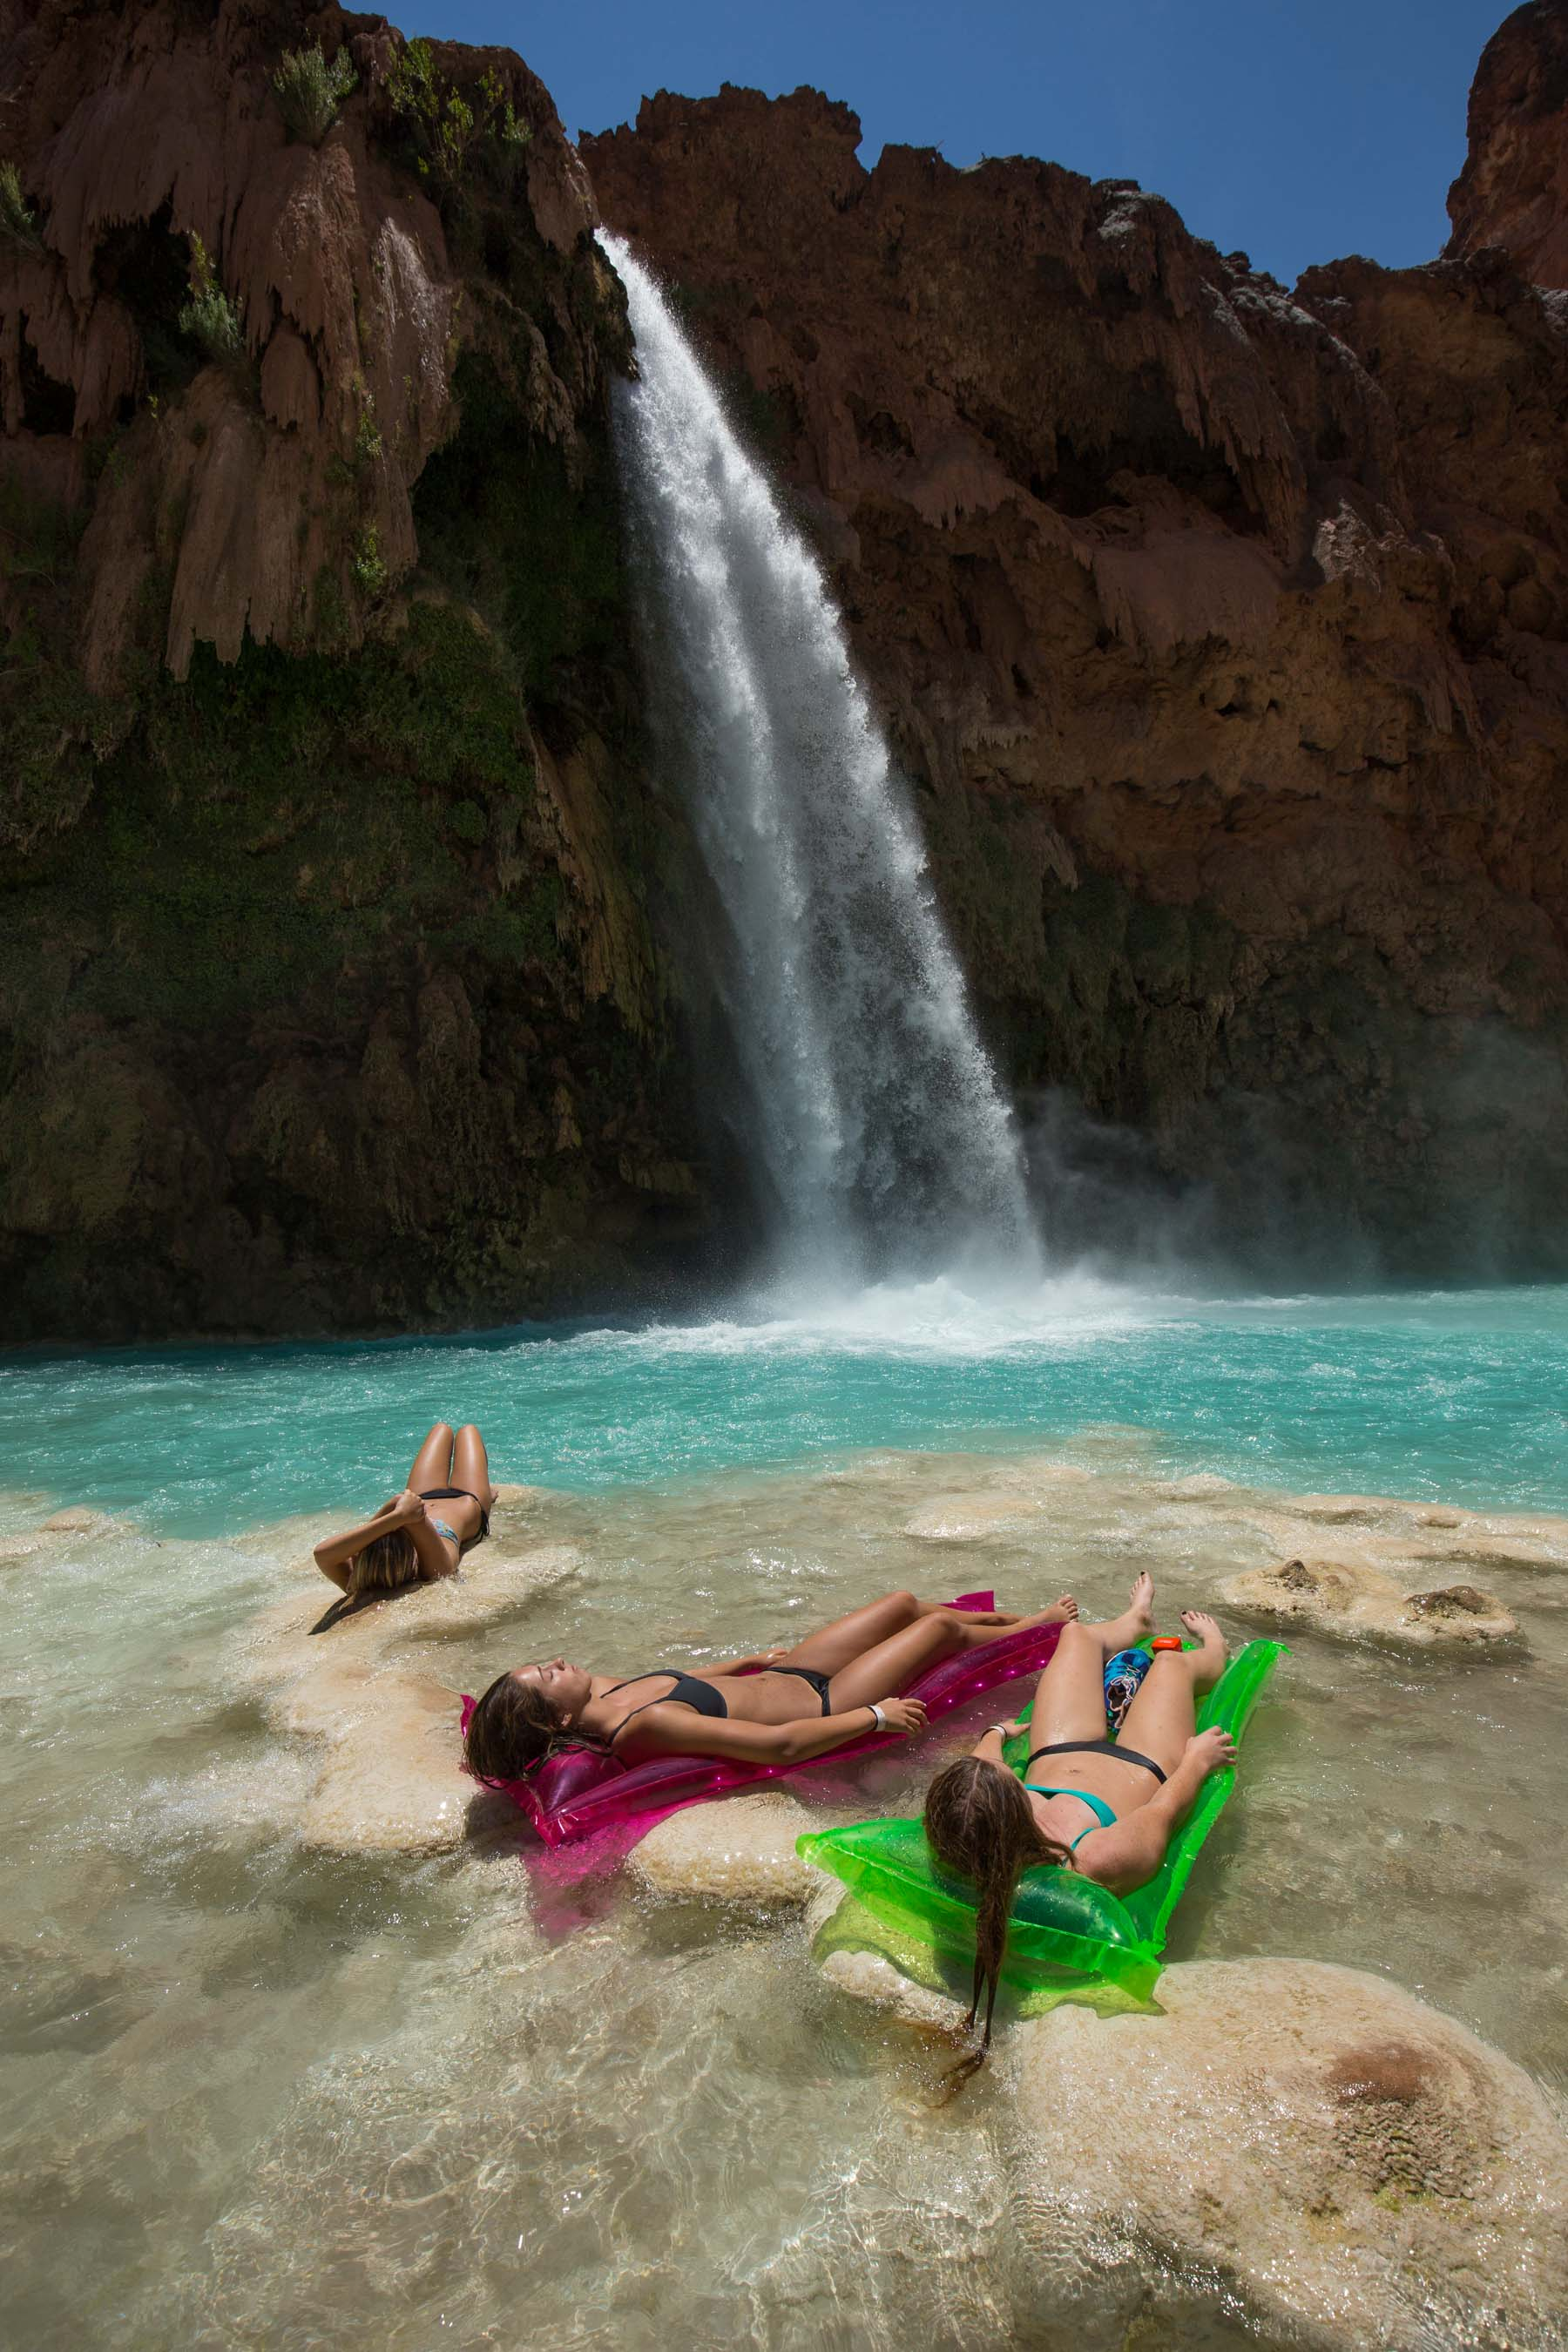 Havasu New York Times / Within the Grand Canyon, the Lure of Havasu Falls